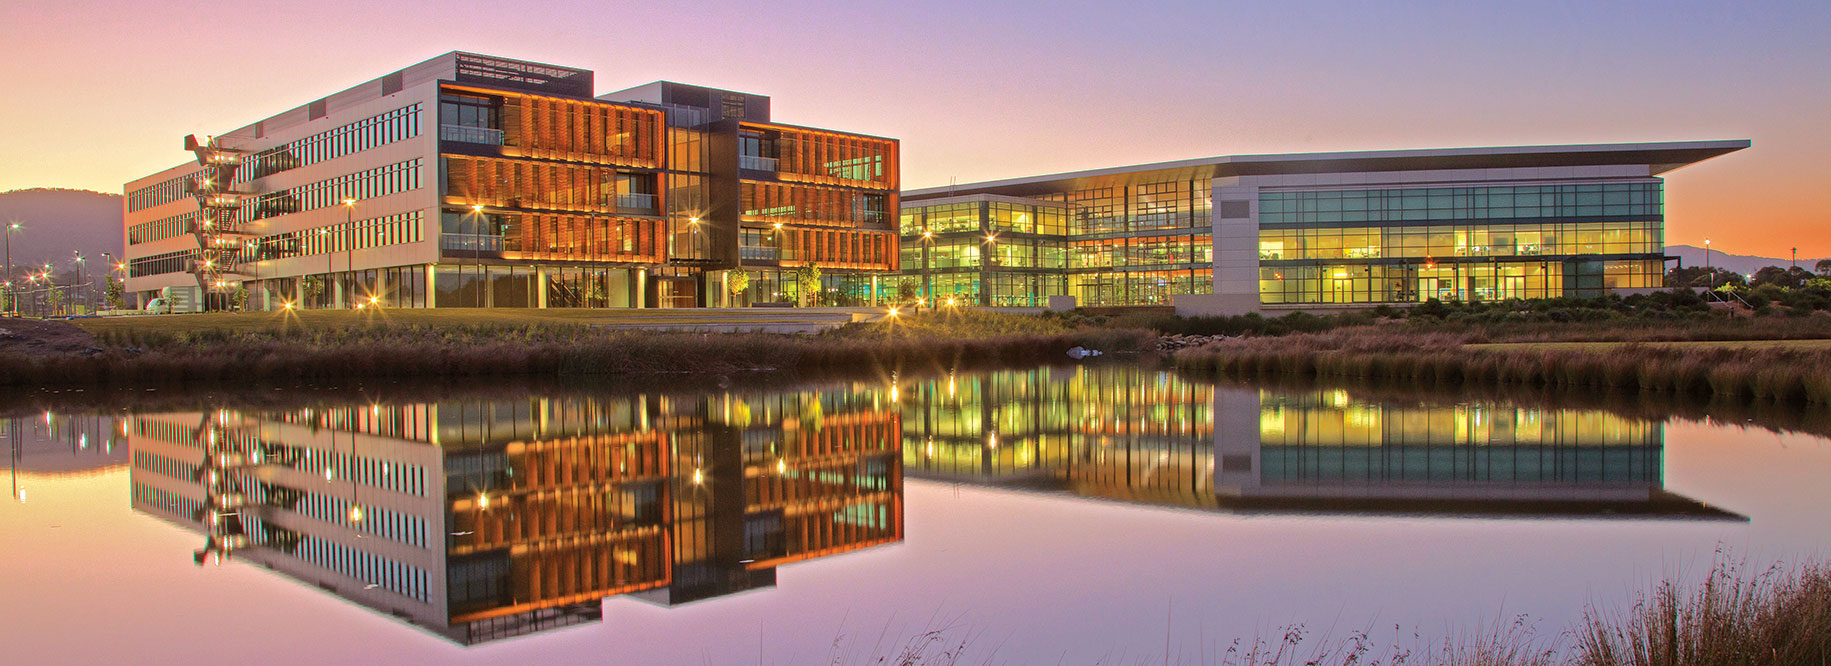 An image of the innovation campus at sunset